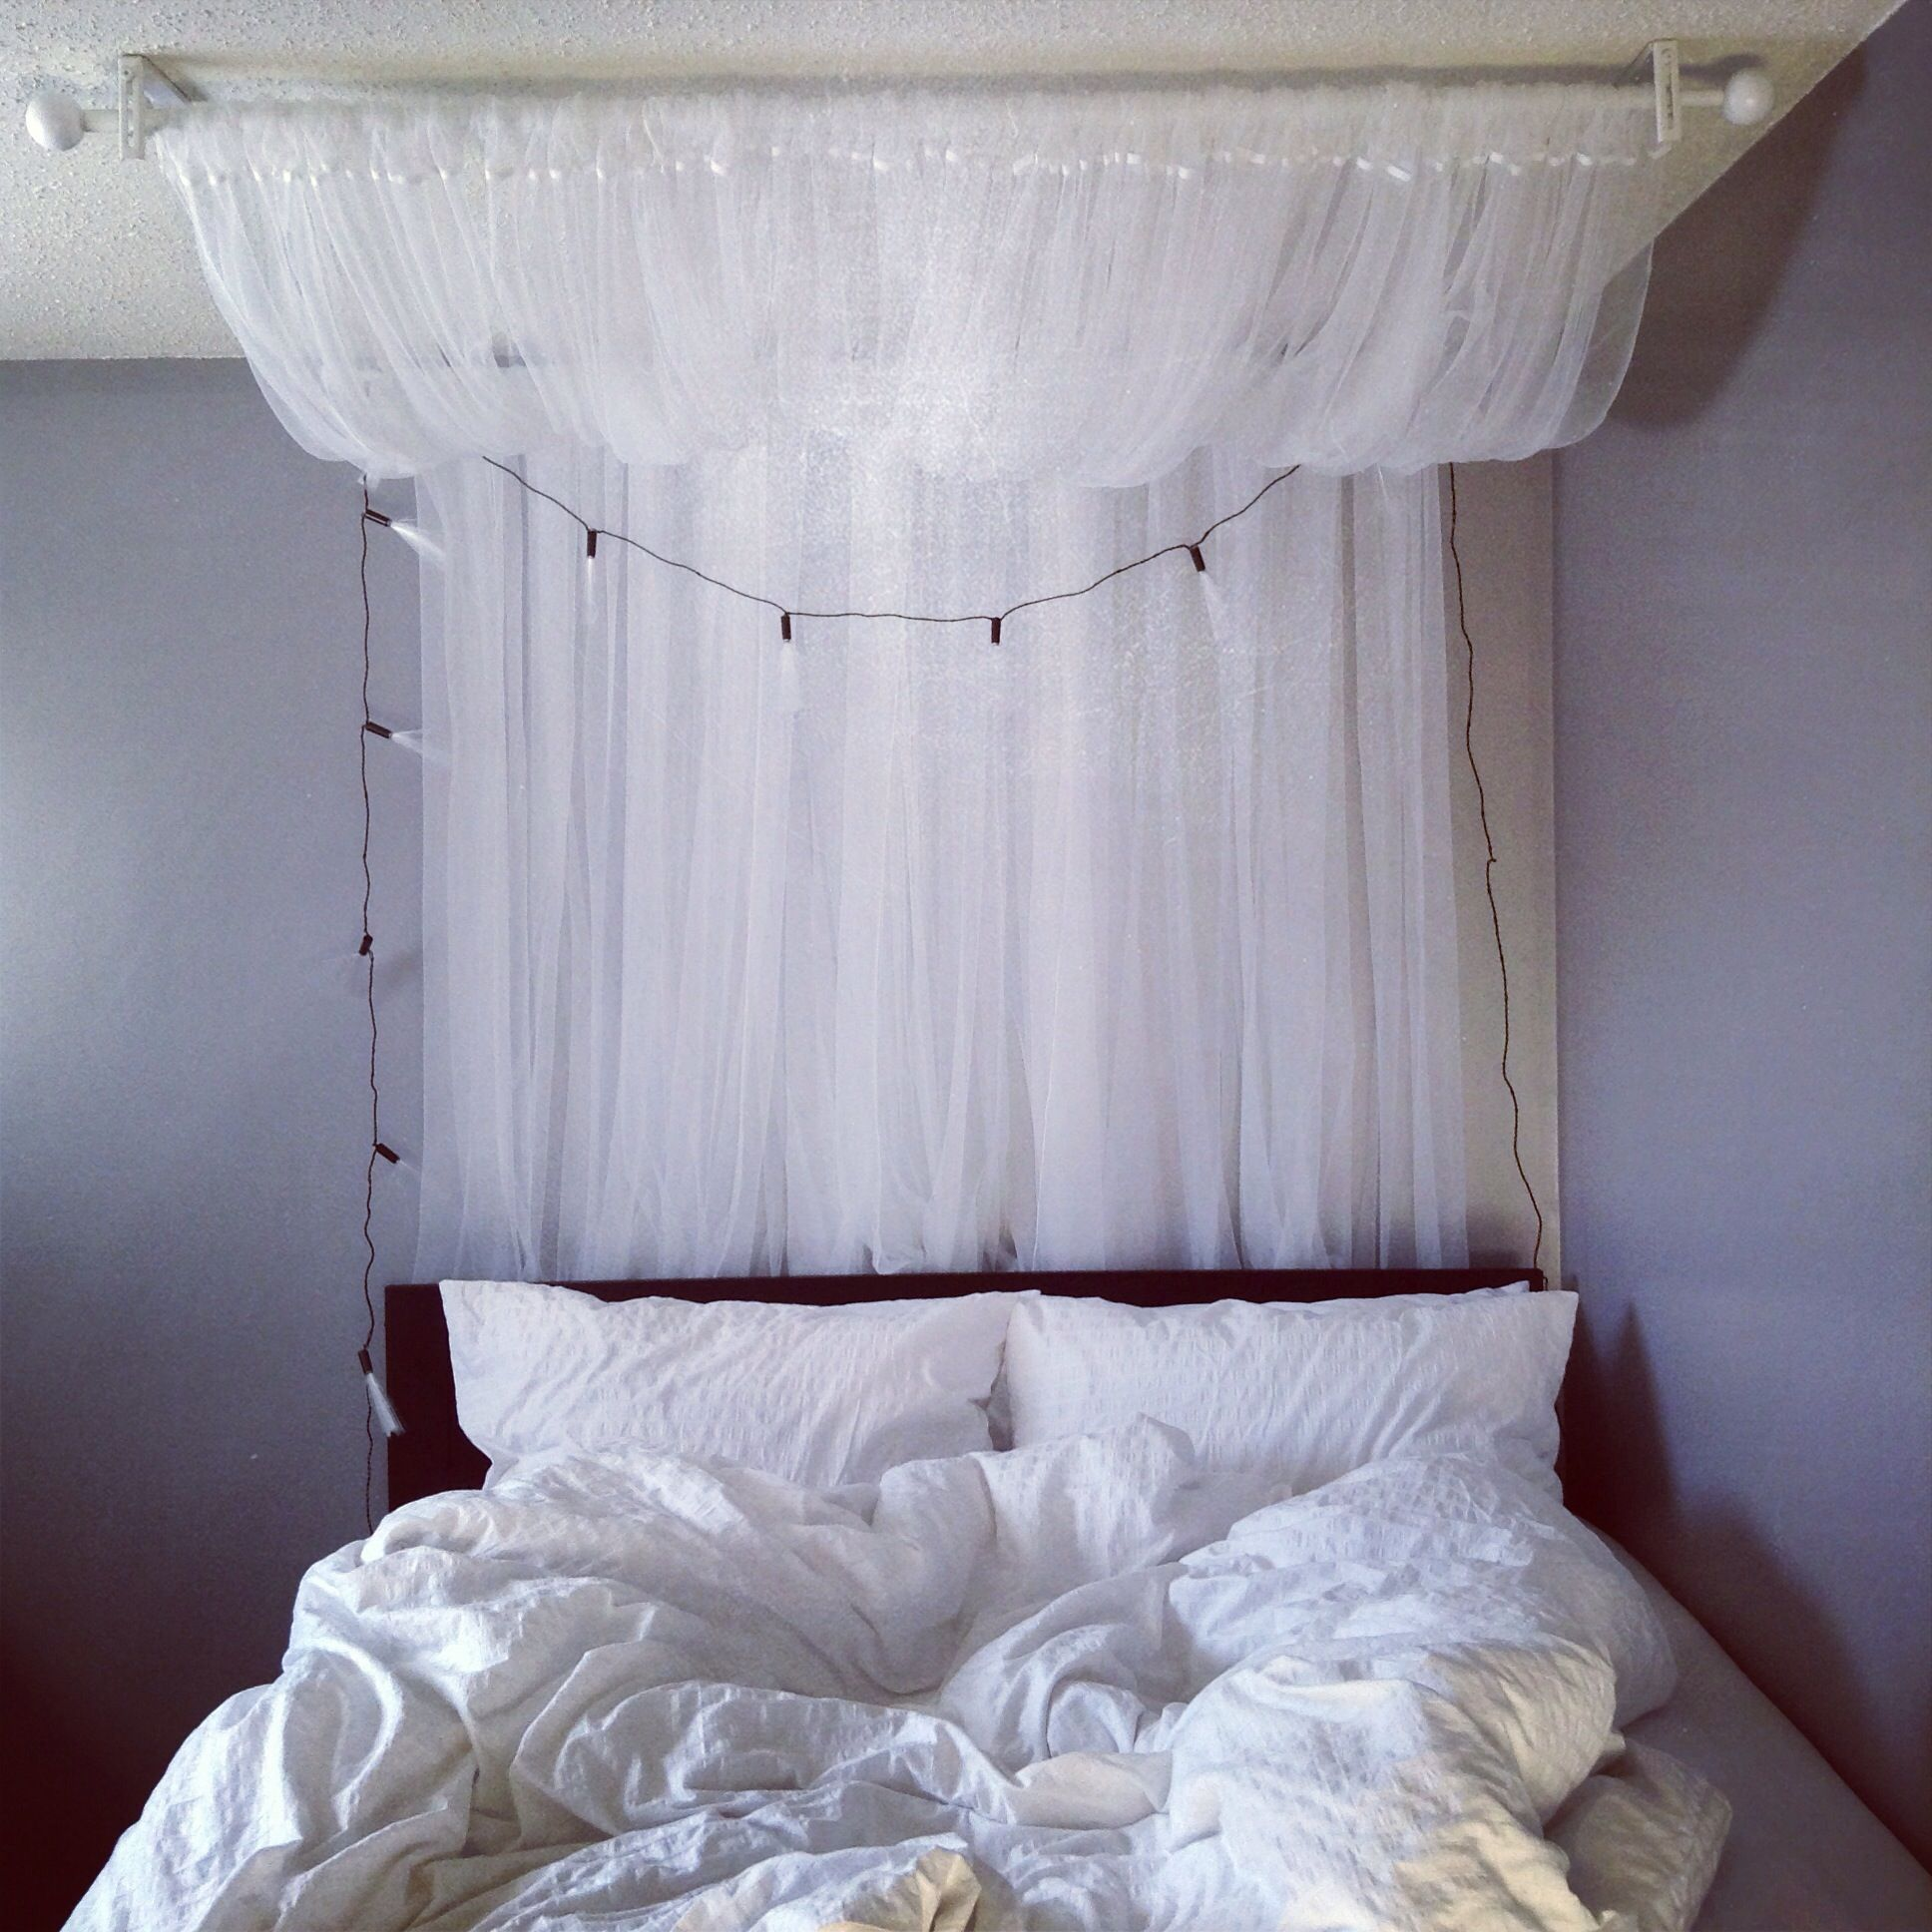 DIY Canopy: 2 Curtain Rods And 2 Sets Of LILL Sheer